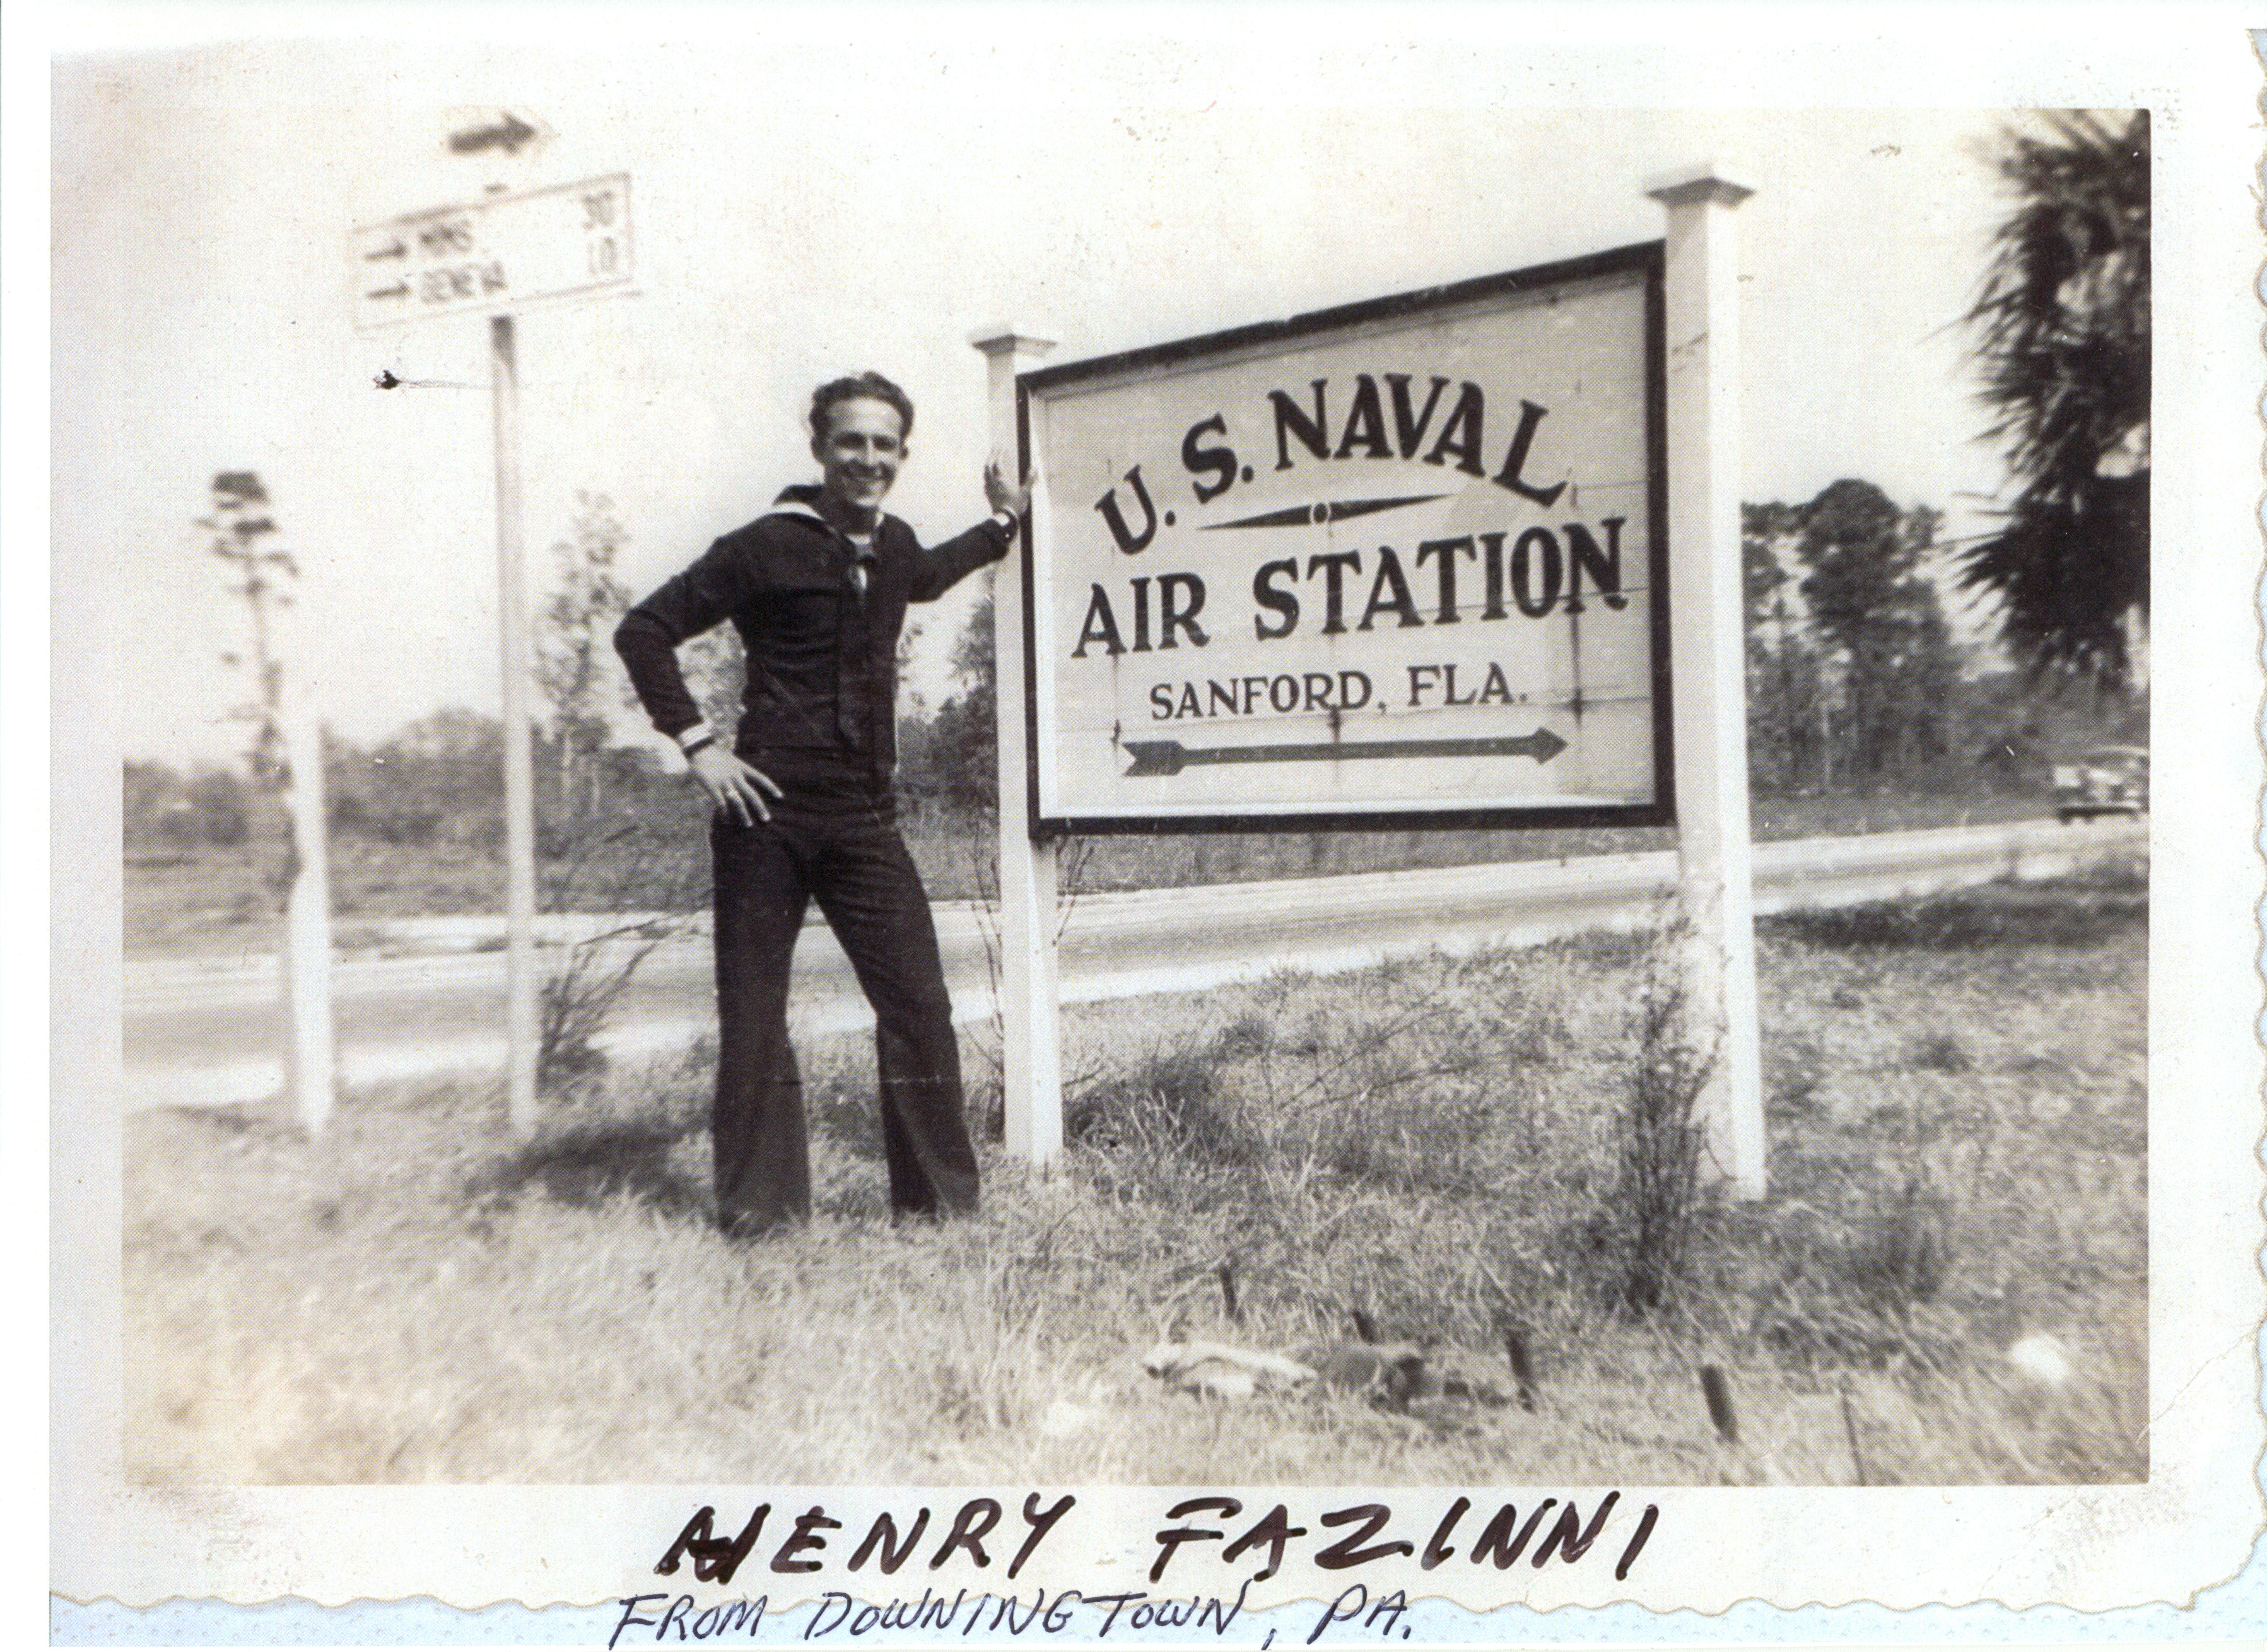 Henry Fazinni, a sailor, next to the sign for the NAS Sanford.